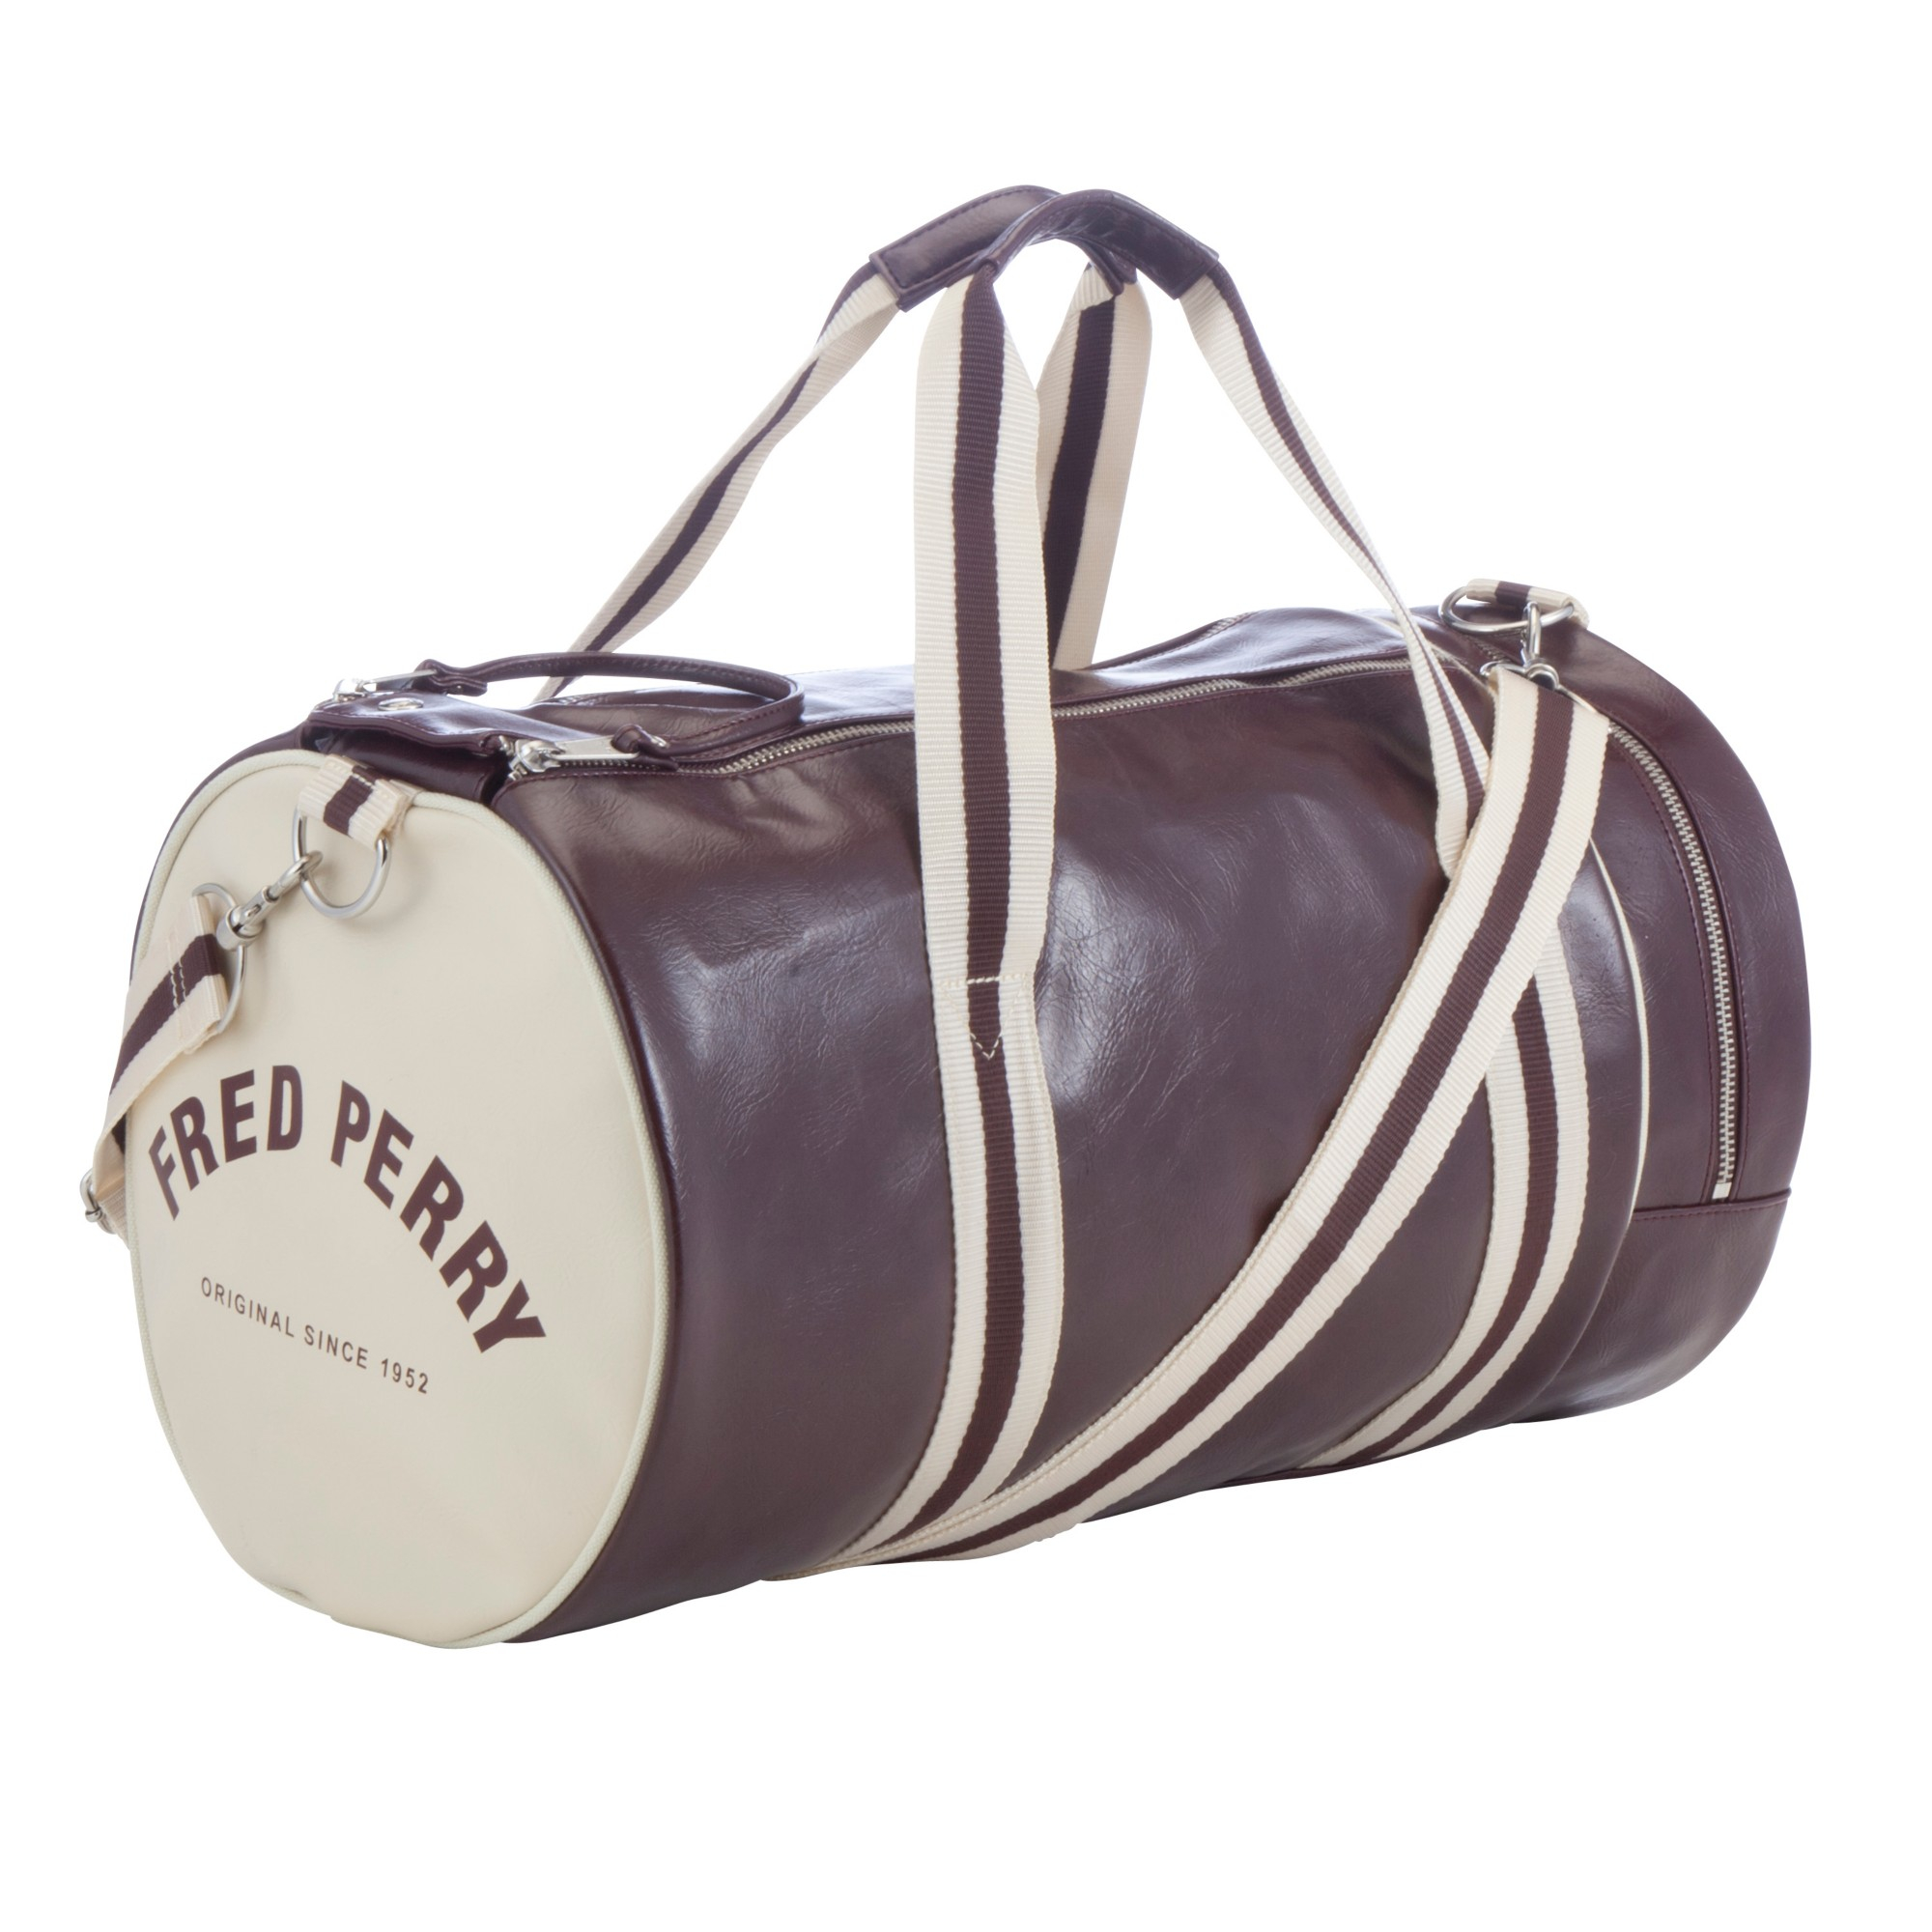 Fred Perry Classic Barrel Bag In Brown For Men Lyst